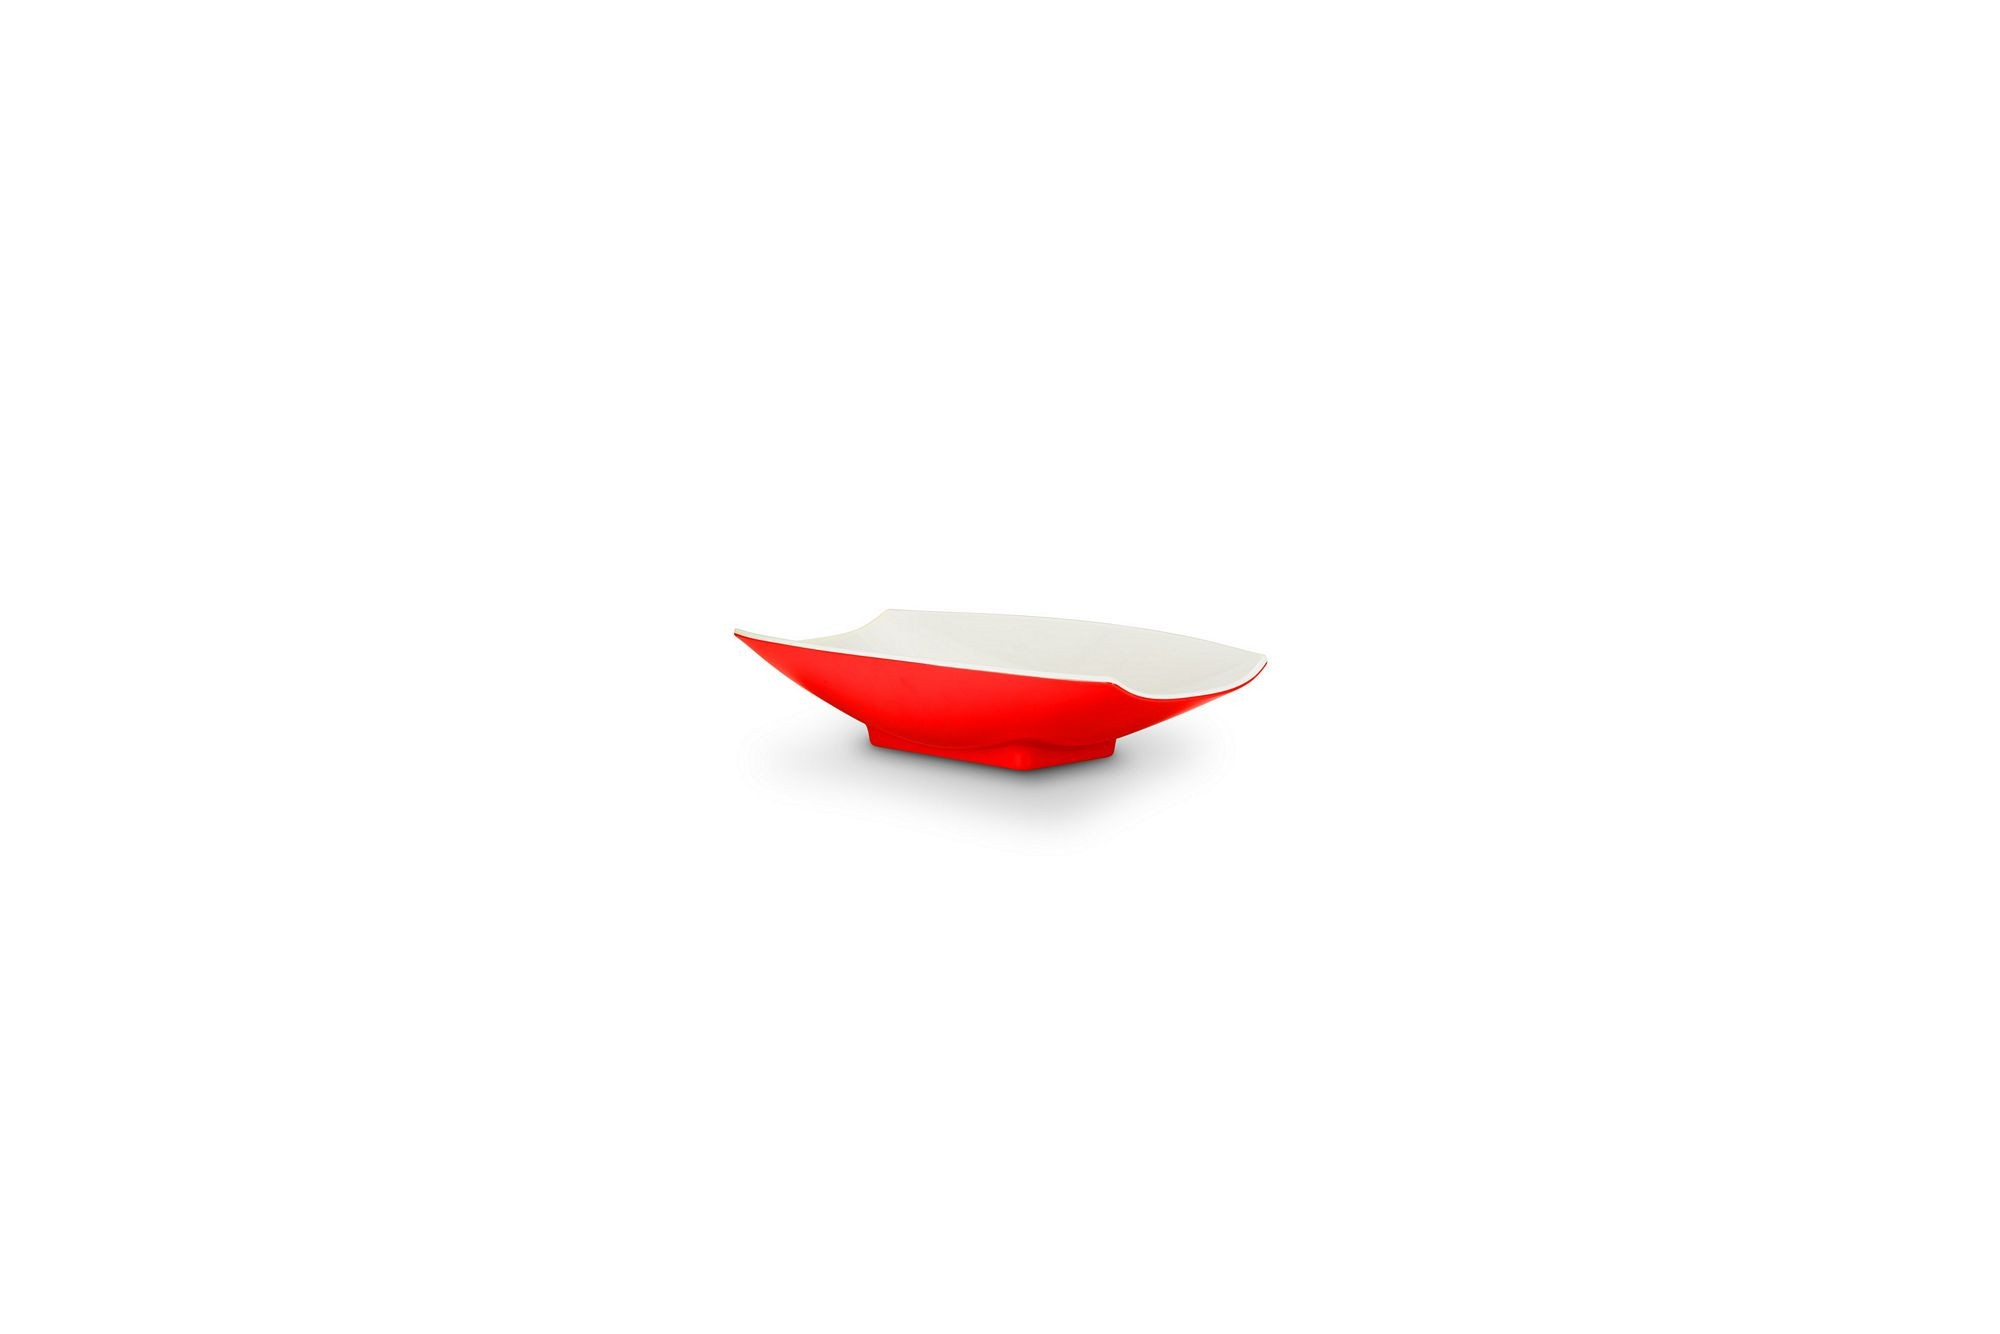 Bon Chef 53700-2ToneRed Melamine Curves Bowl, Red Outside/White Inside 4 oz.